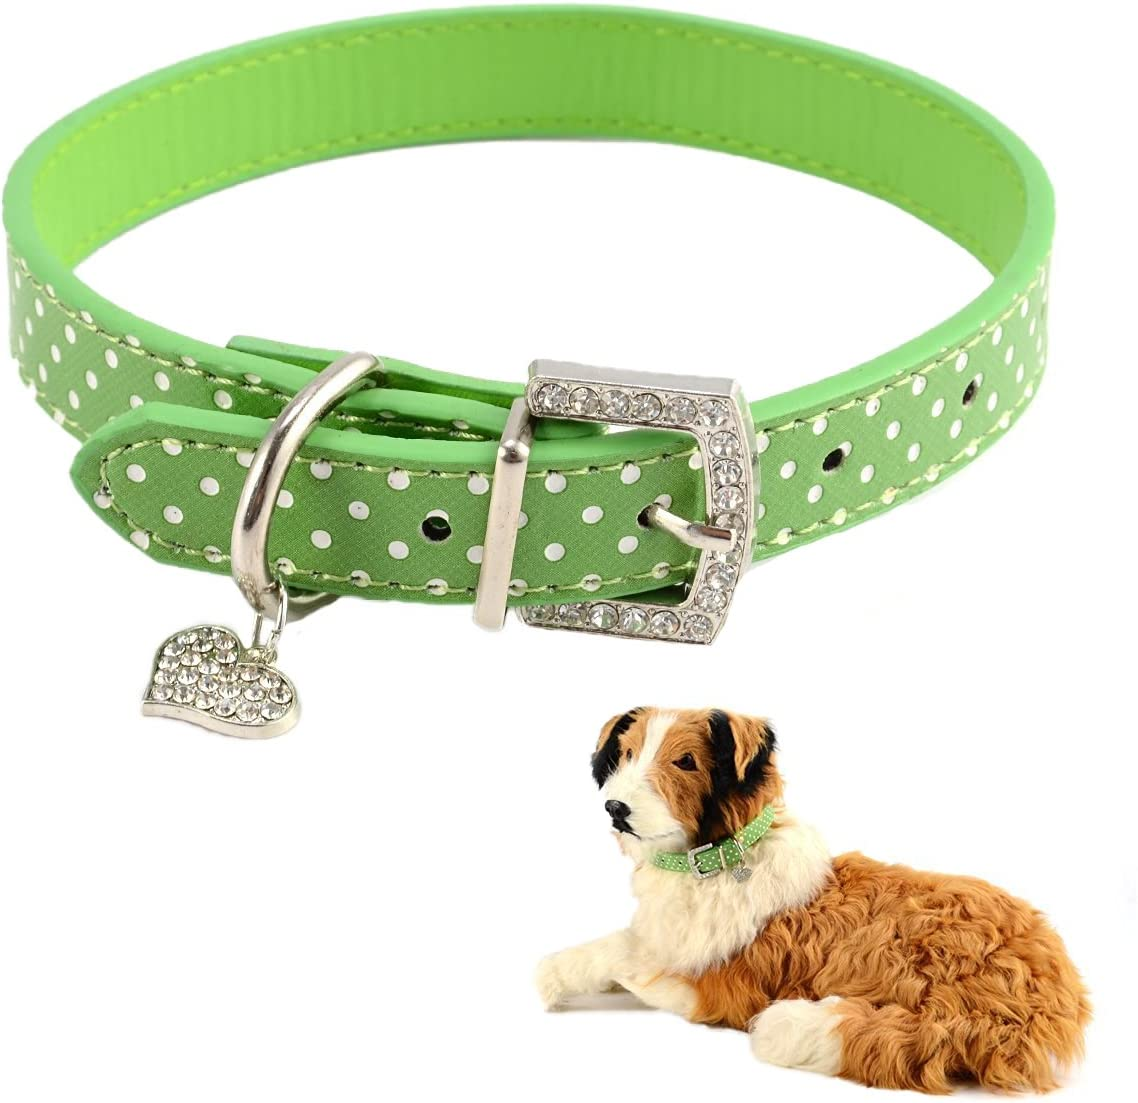 5% OFF Free shipping anywhere in the nation Mummumi Small Dog Collar Cat Adjustable Leather Dots PU